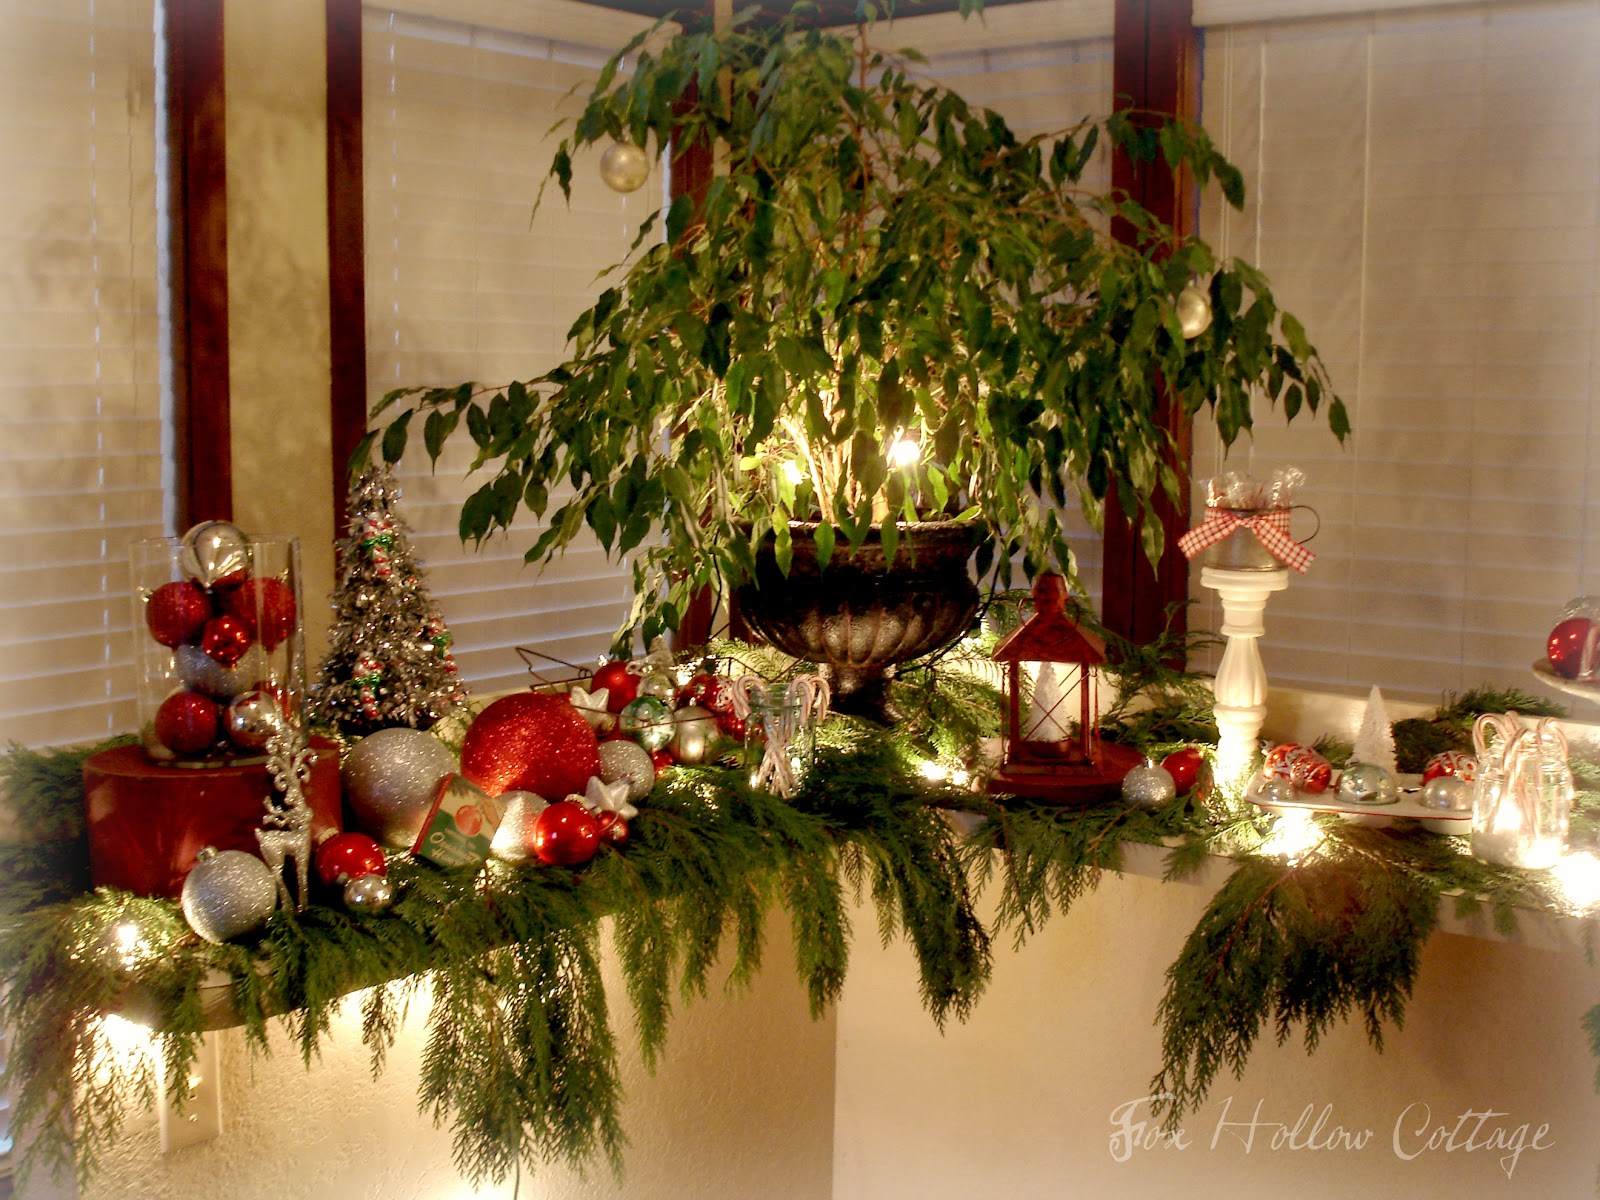 Christmas Decorations: Thrifty Christmas Decorating With Cedar Boughs